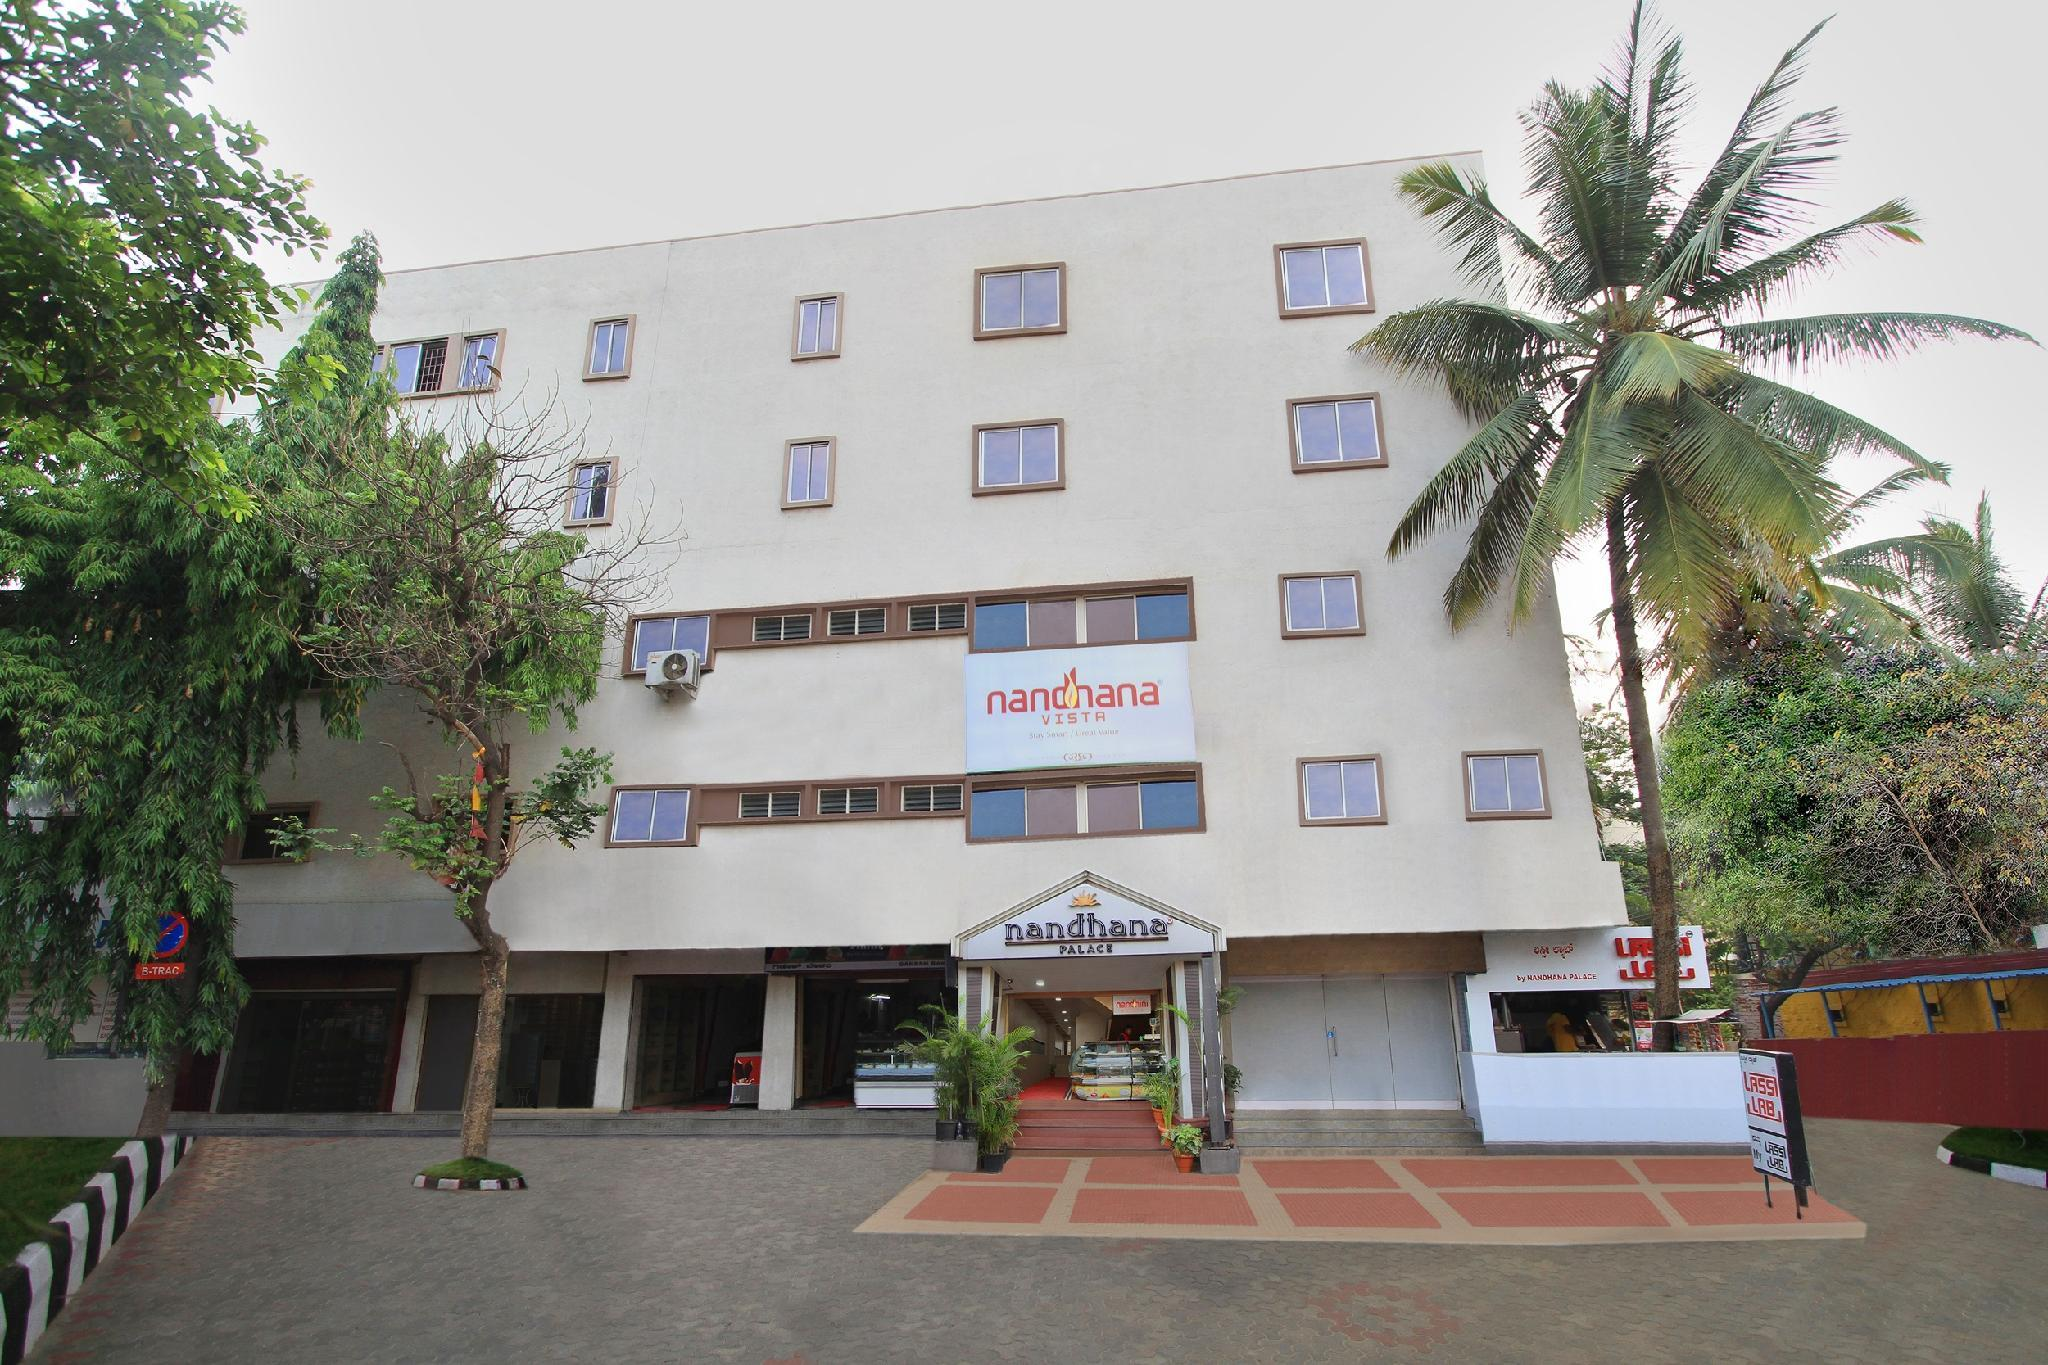 Hotel Nandhana Vista In Bangalore Room Deals Photos Reviews